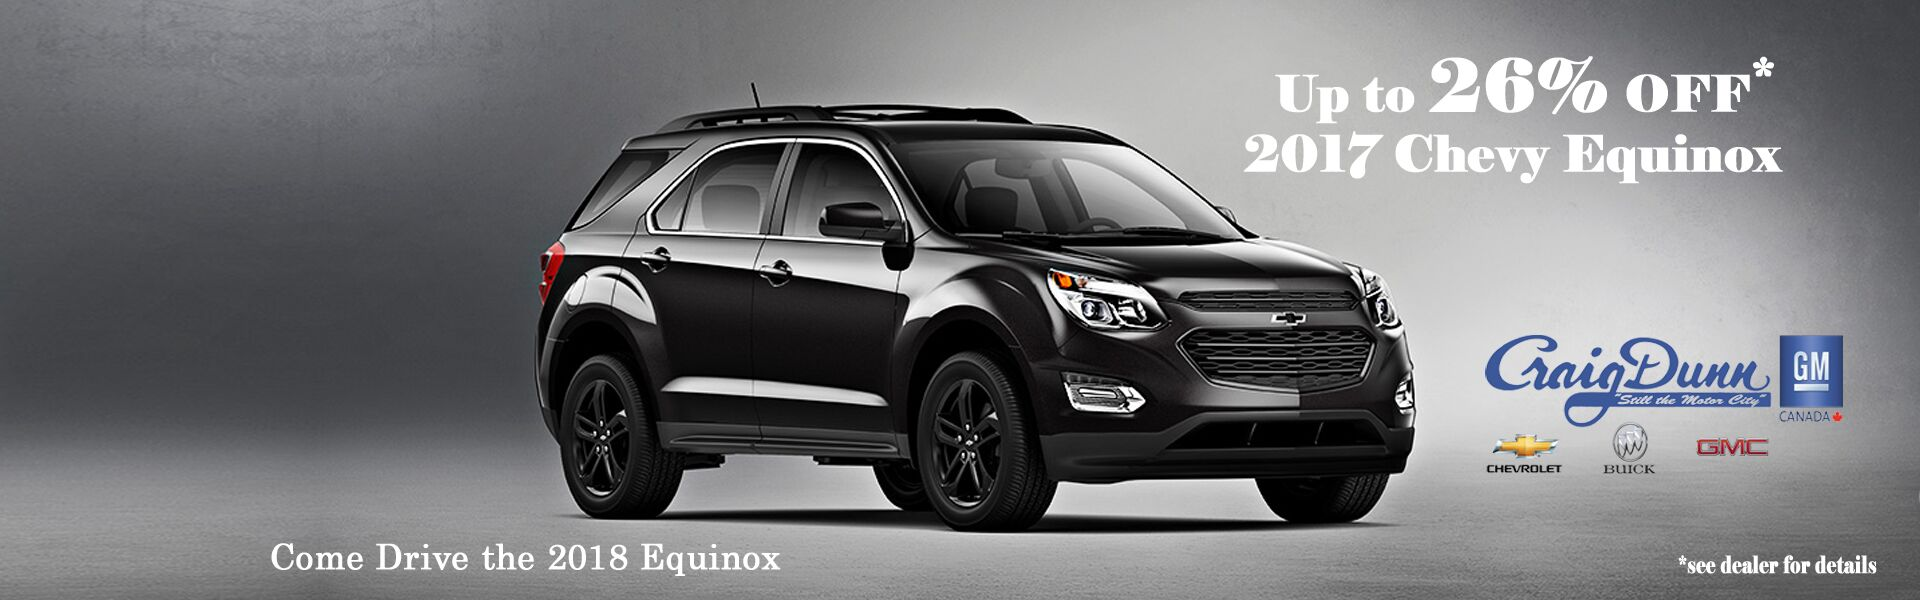 Up to 26% off 2017 Equinox's